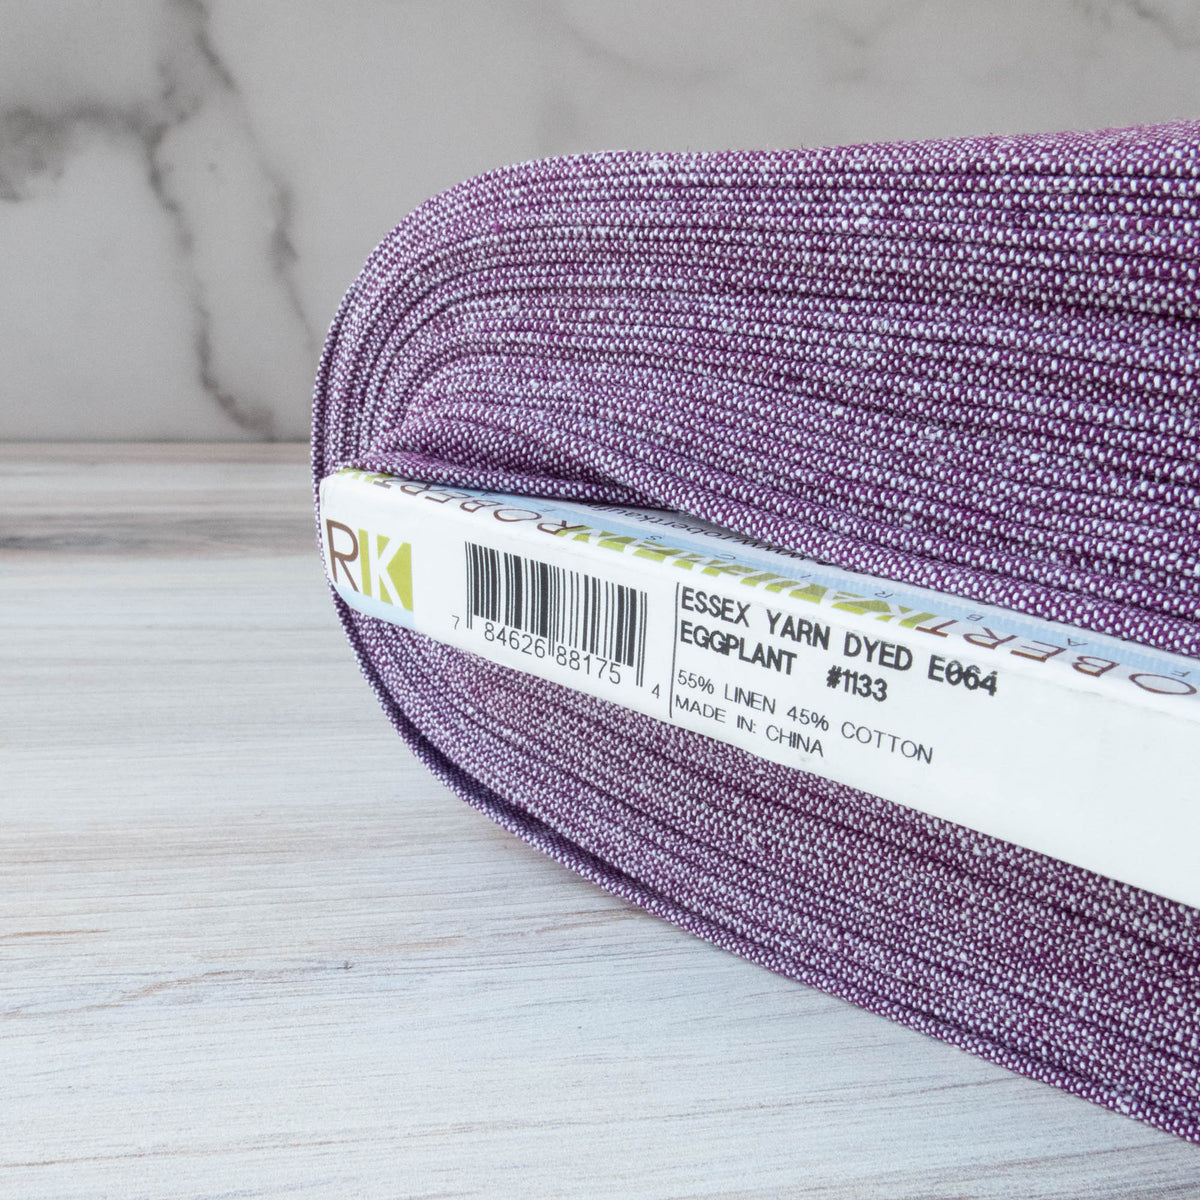 Essex Yarn Dyed - Eggplant (E064-1133) Fabric - Snuggly Monkey